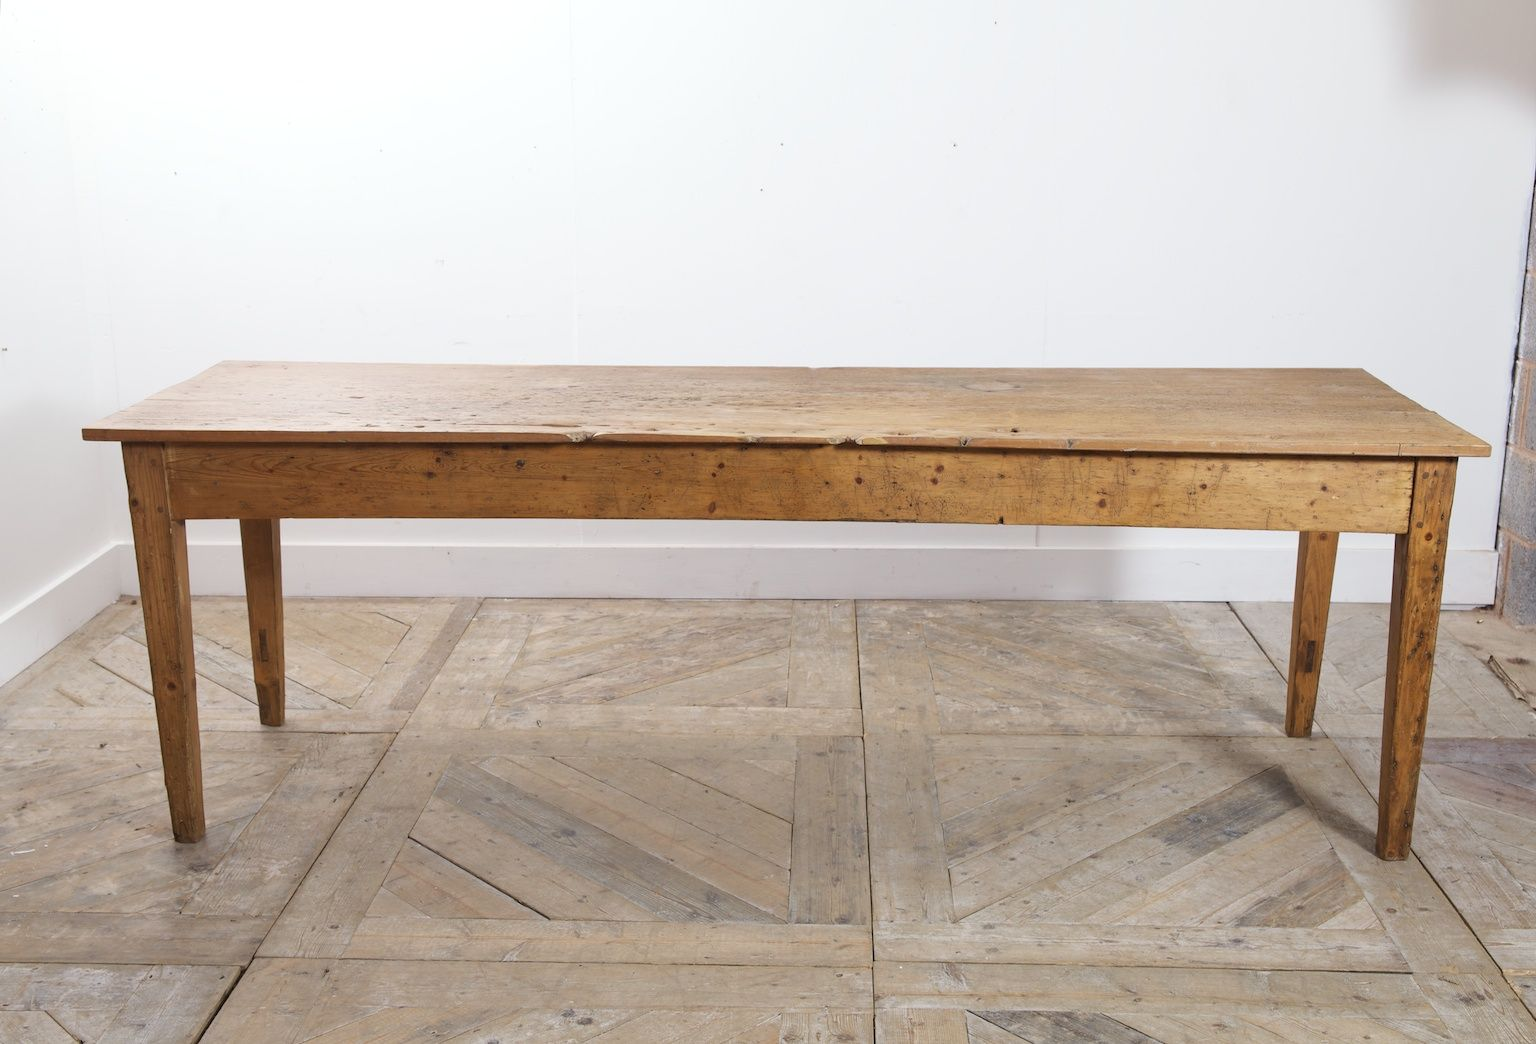 antique pine country kitchen table 1 country kitchen tables Antique Pine Country Kitchen Table